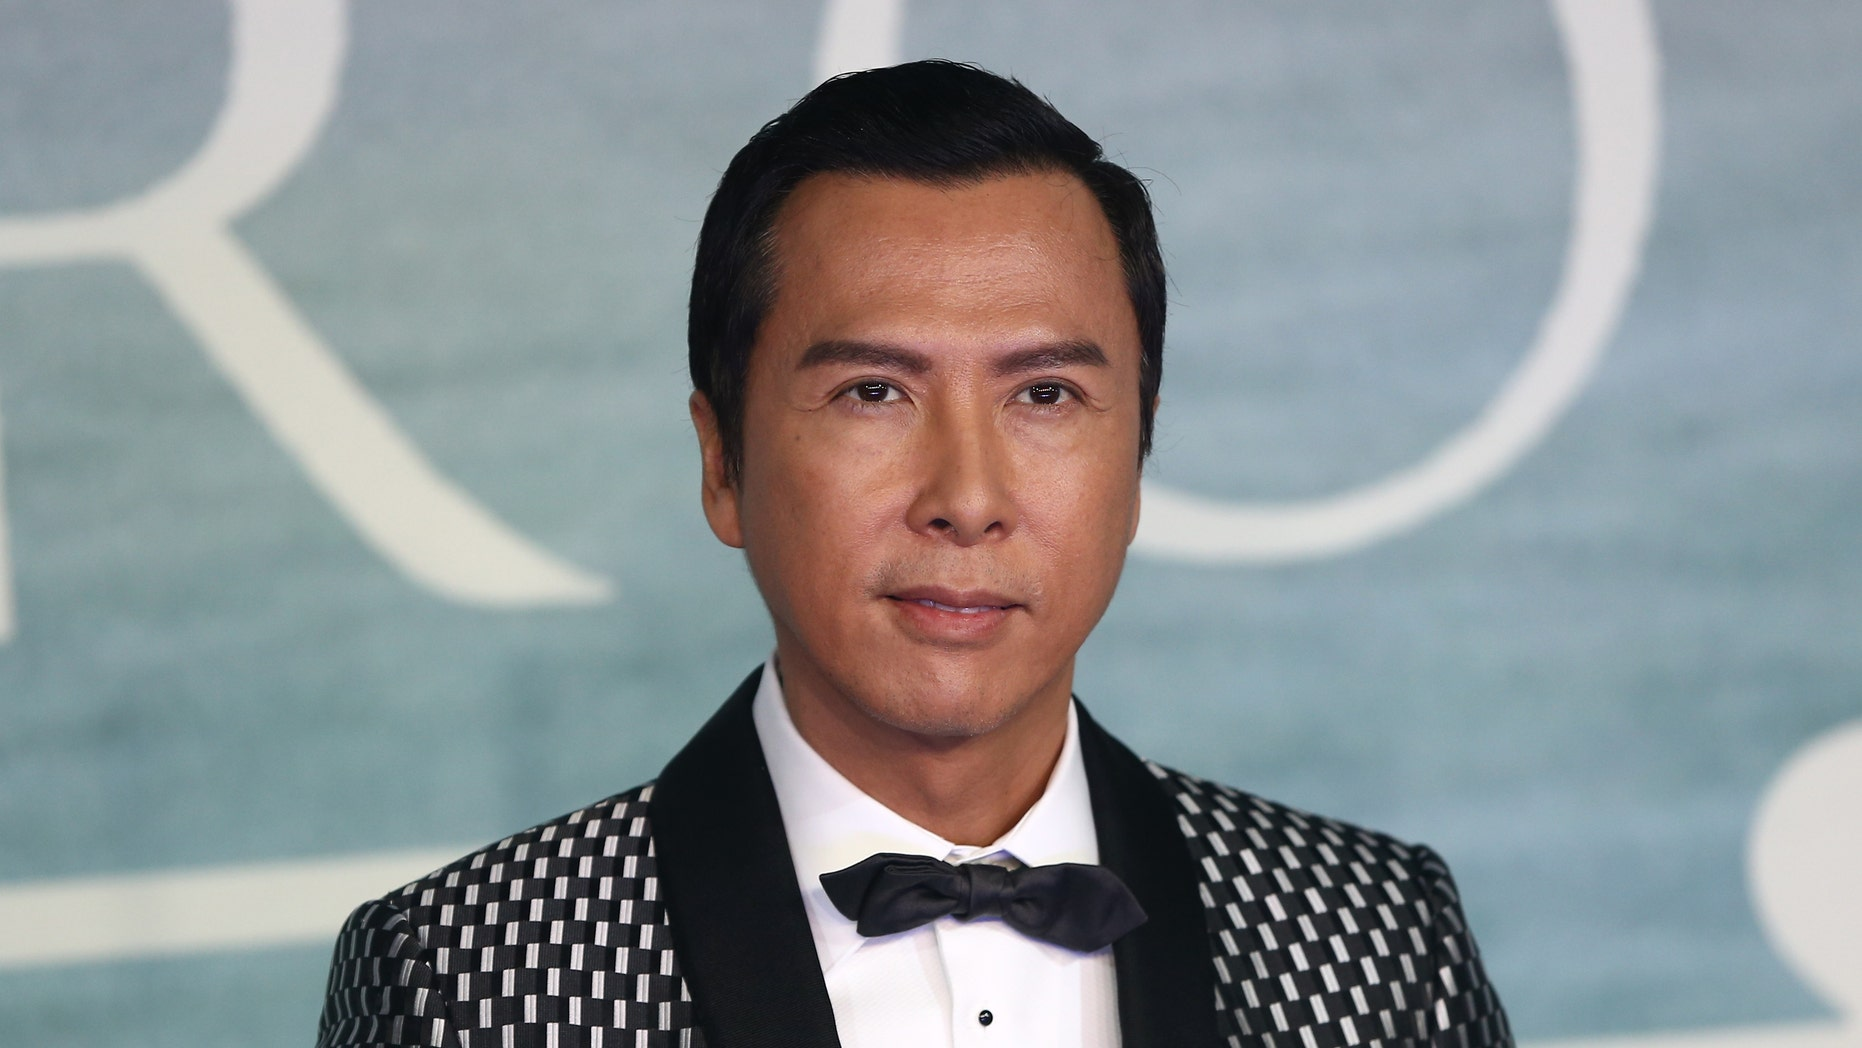 Donnie Yen arrives at the European Premiere of Star Wars Rogue One at the Tate Modern in London, Britain December 13, 2016. REUTERS/Neil Hall  - RTX2UW0U